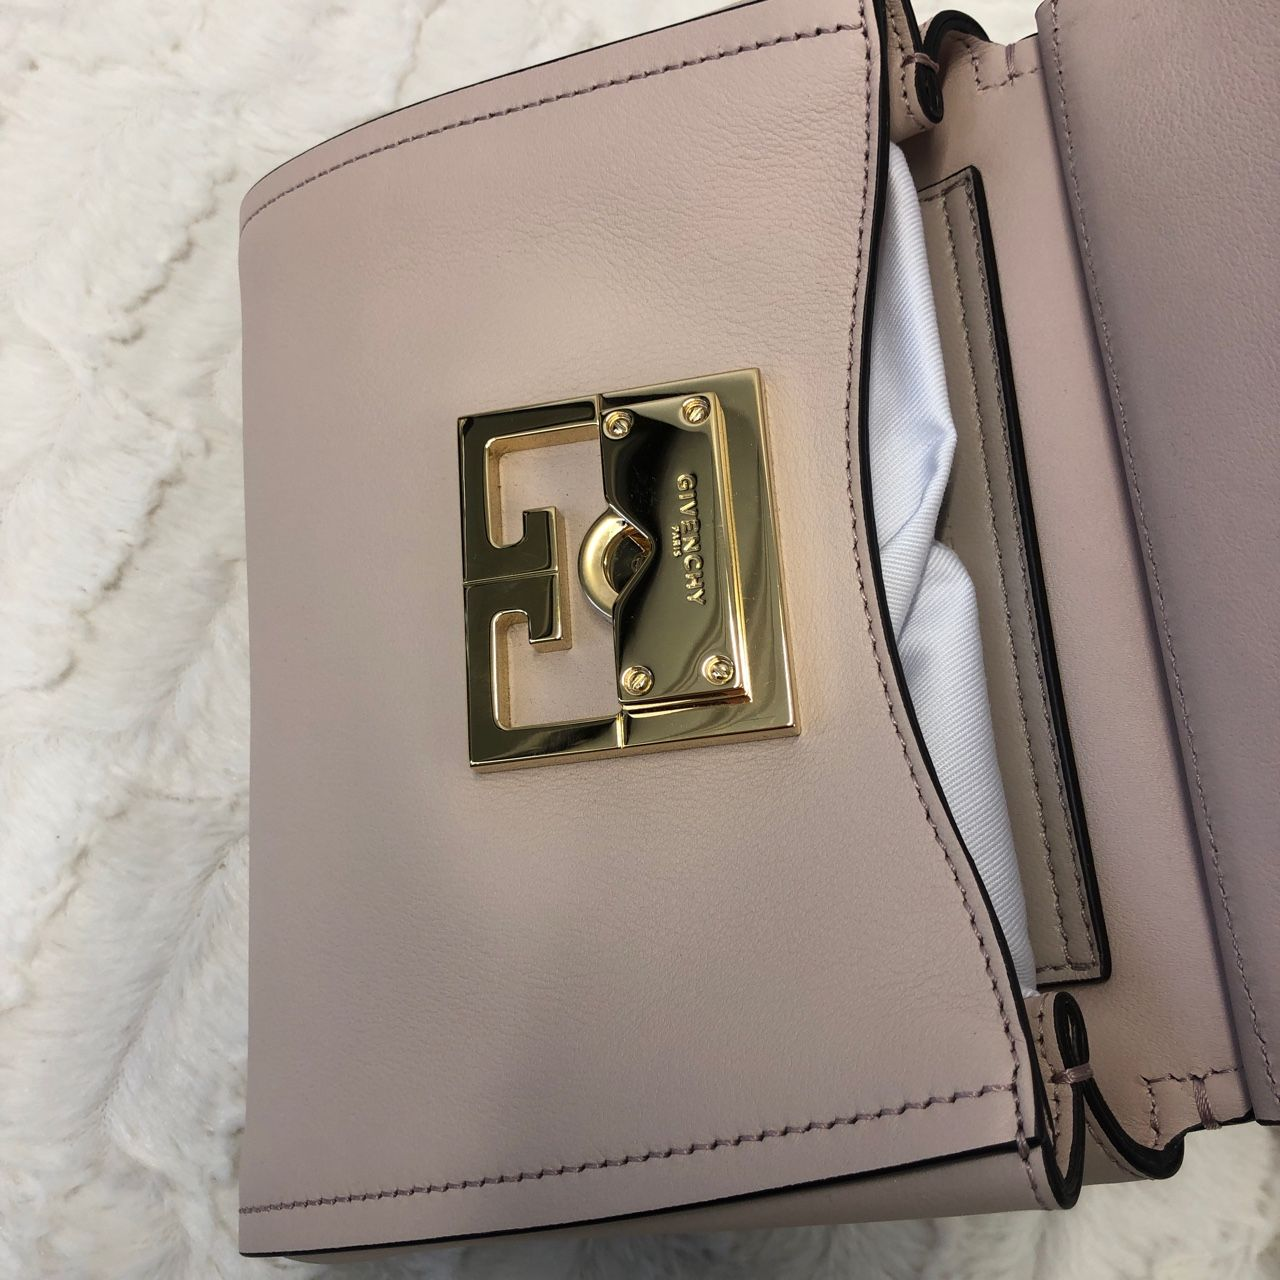 Givenchy Mini Mystic Satchel Bag Leather Pale Pink A0146251